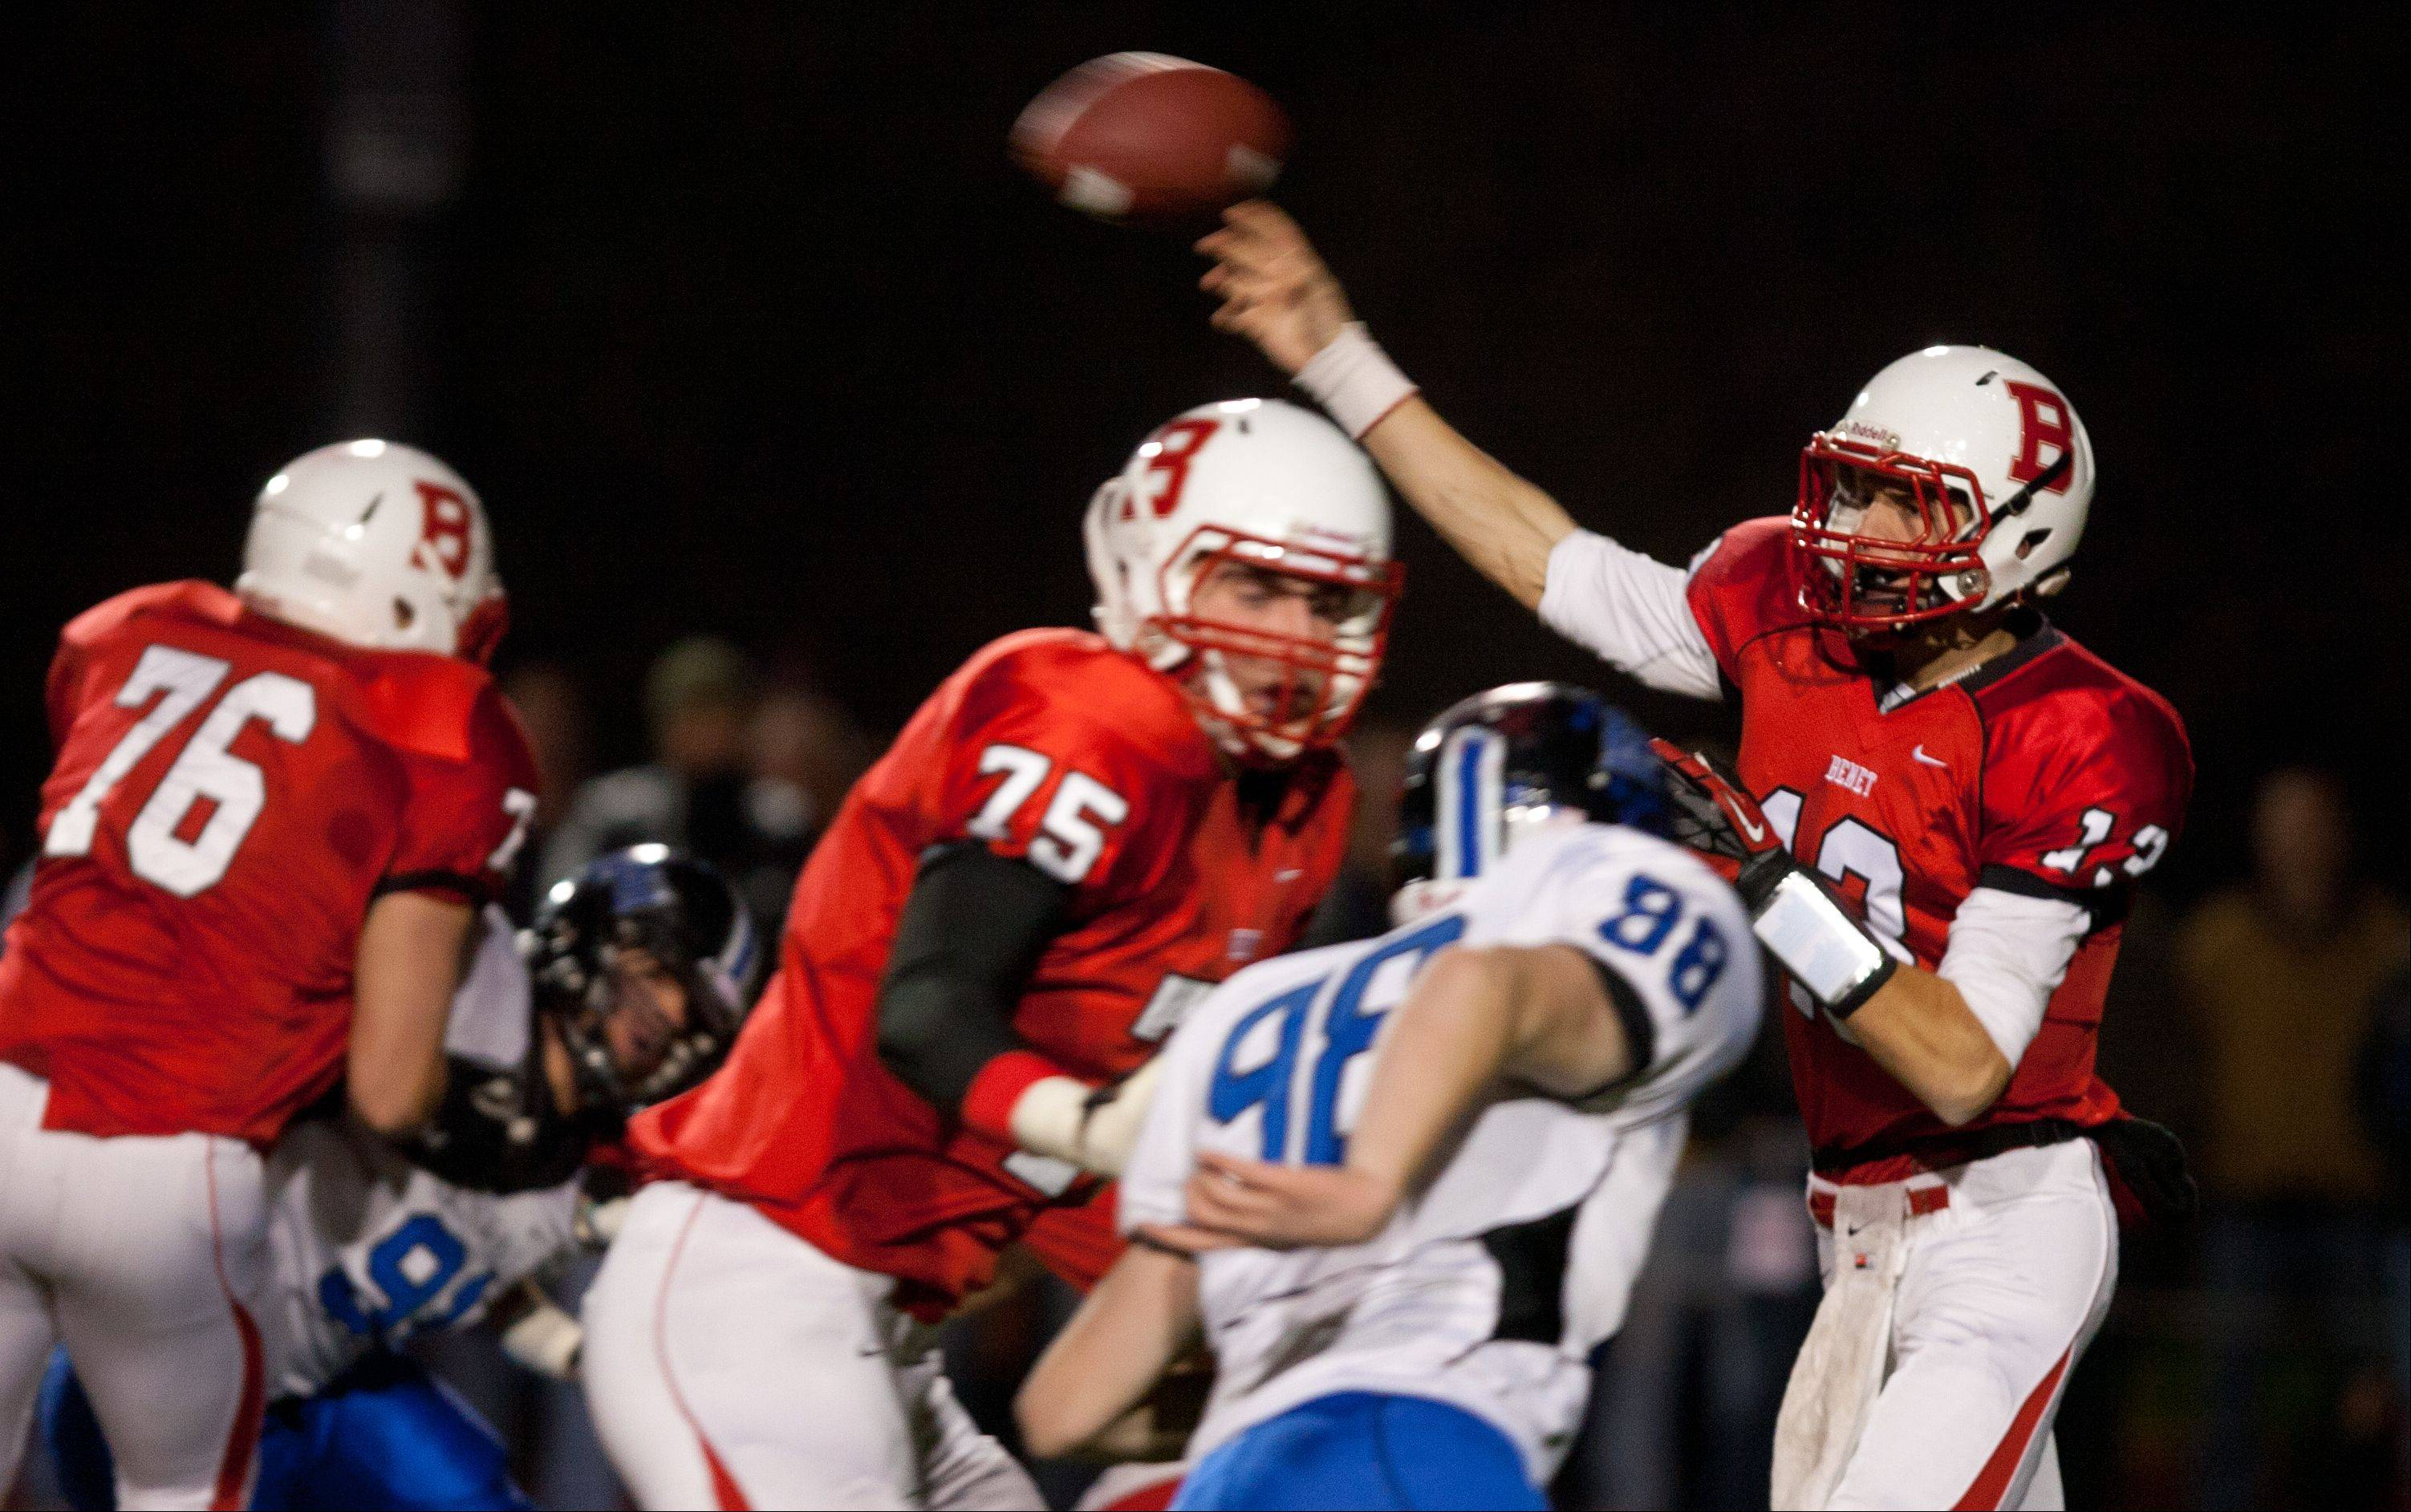 Benet quarterback Jack Beneventi passes over the middle against Lincoln-Way East during Class 7A football semifinals at Benedictine.